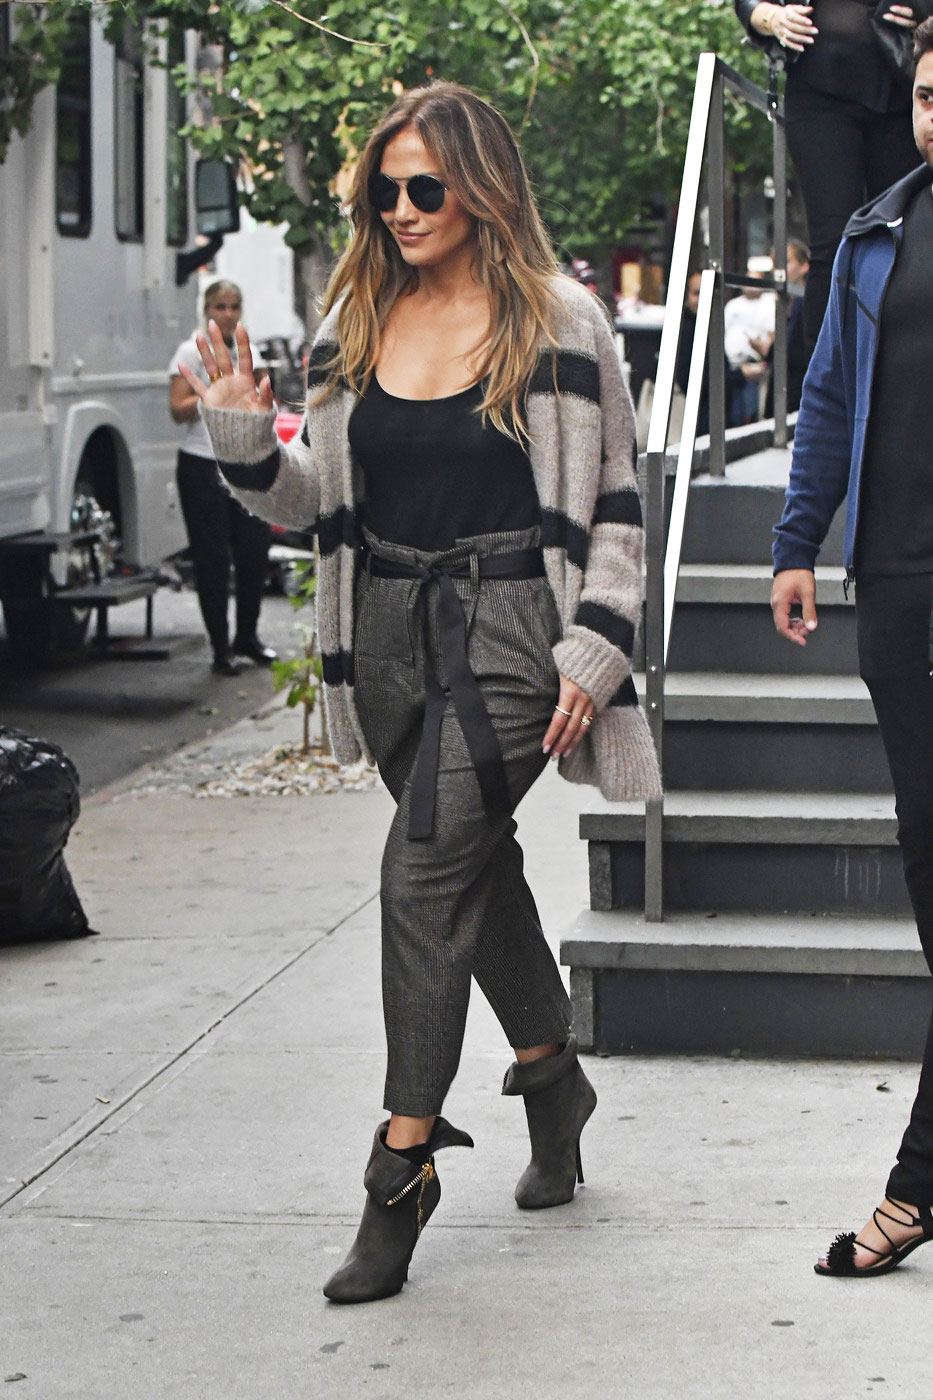 e4a6e28bc9ba Jennifer Lopez - The Budget Babe | Affordable Fashion & Style Blog